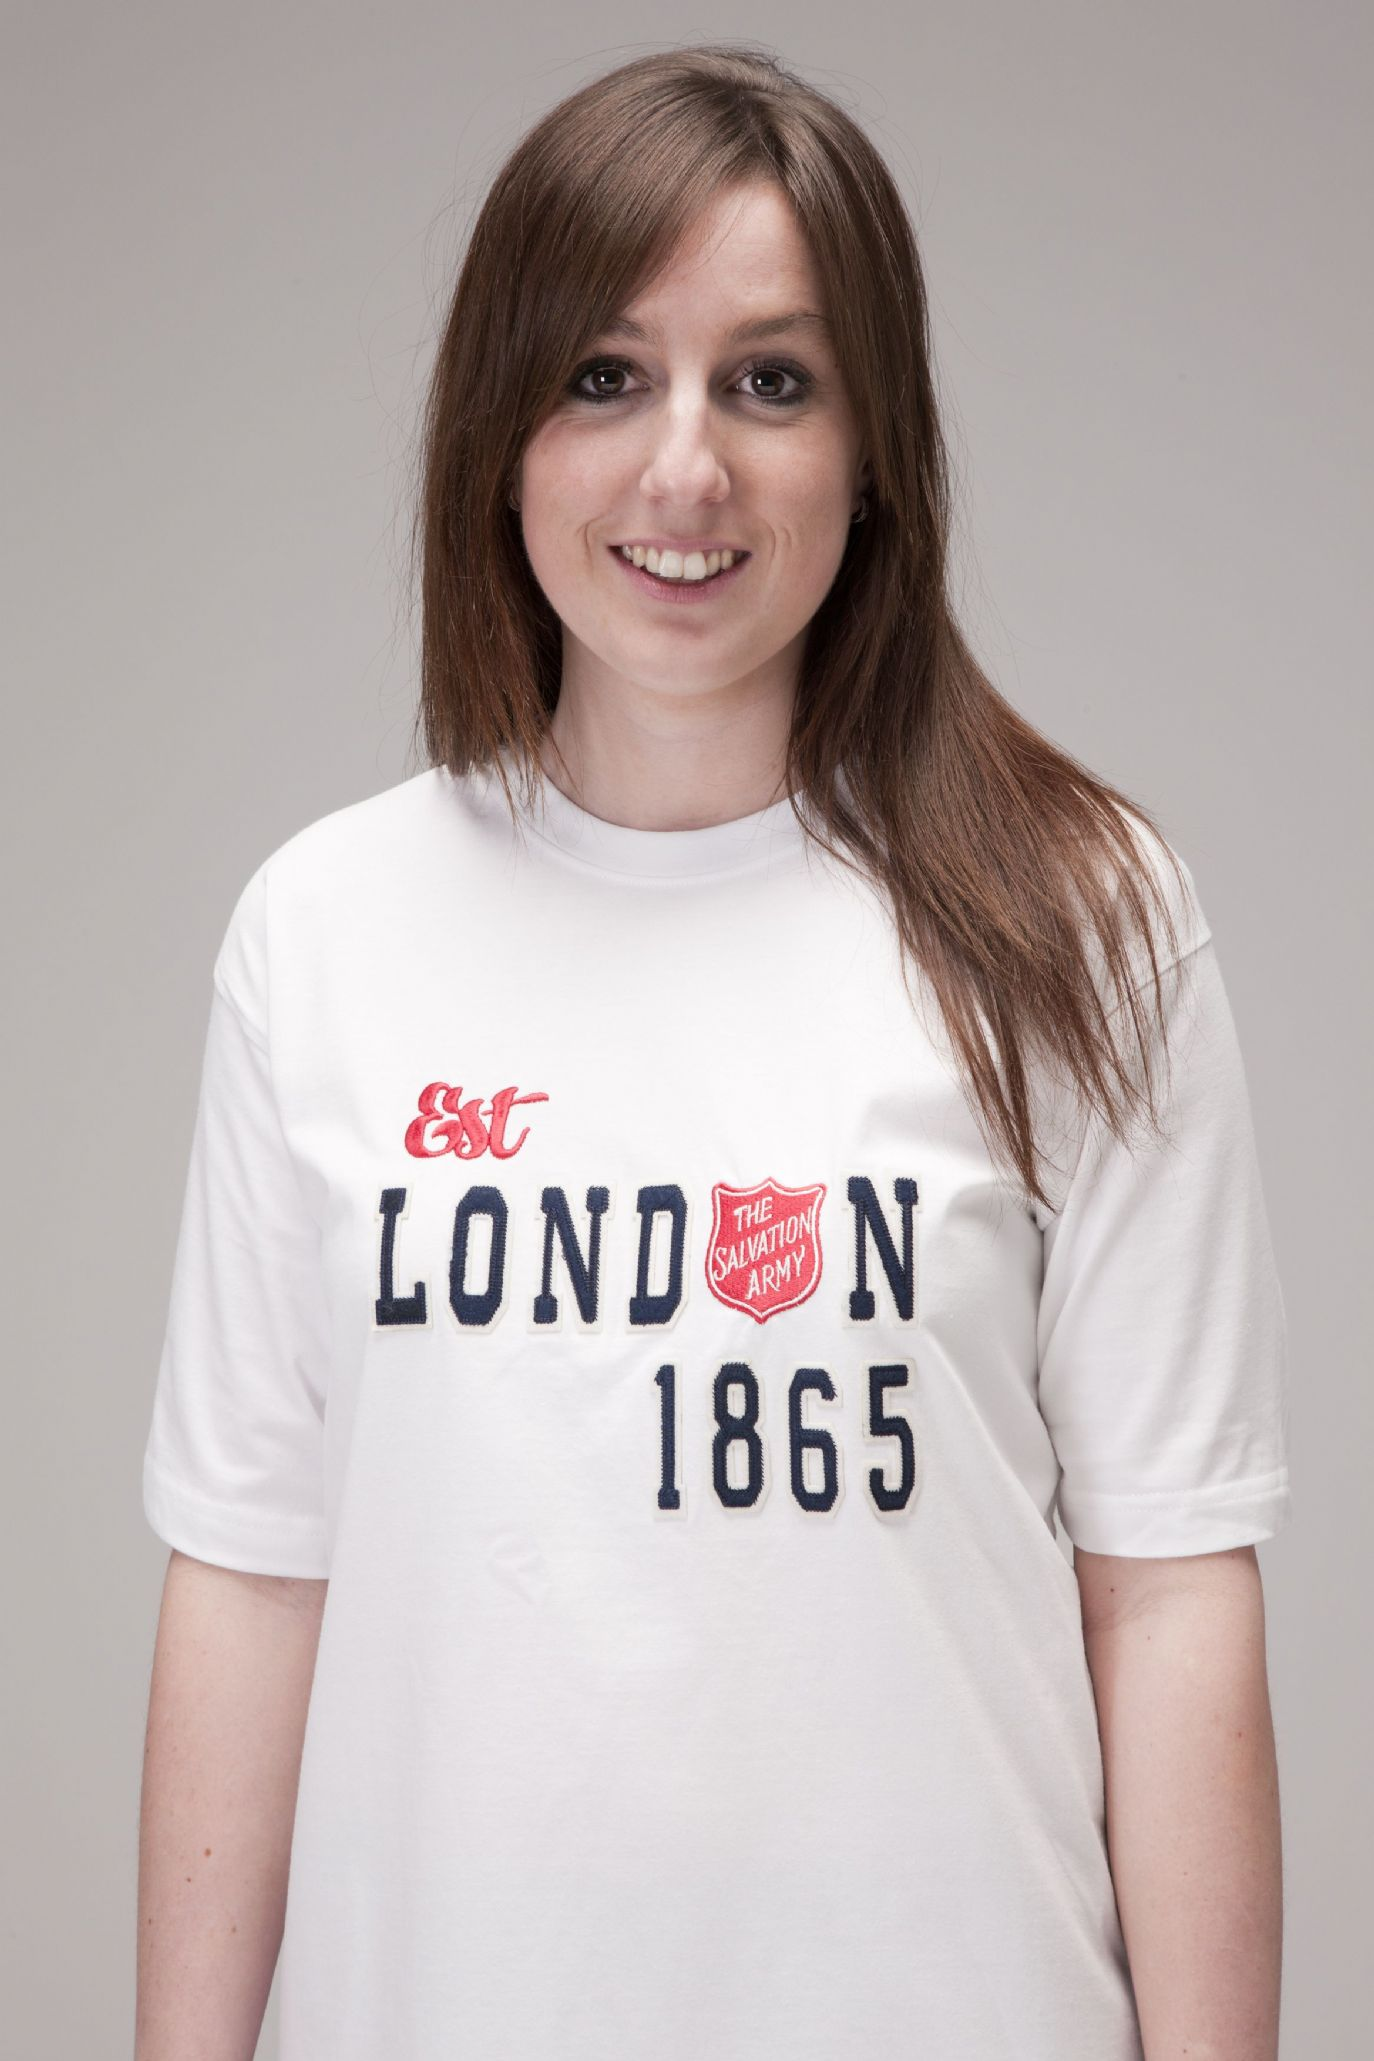 Est London 1865 White Fairtrade T-shirt